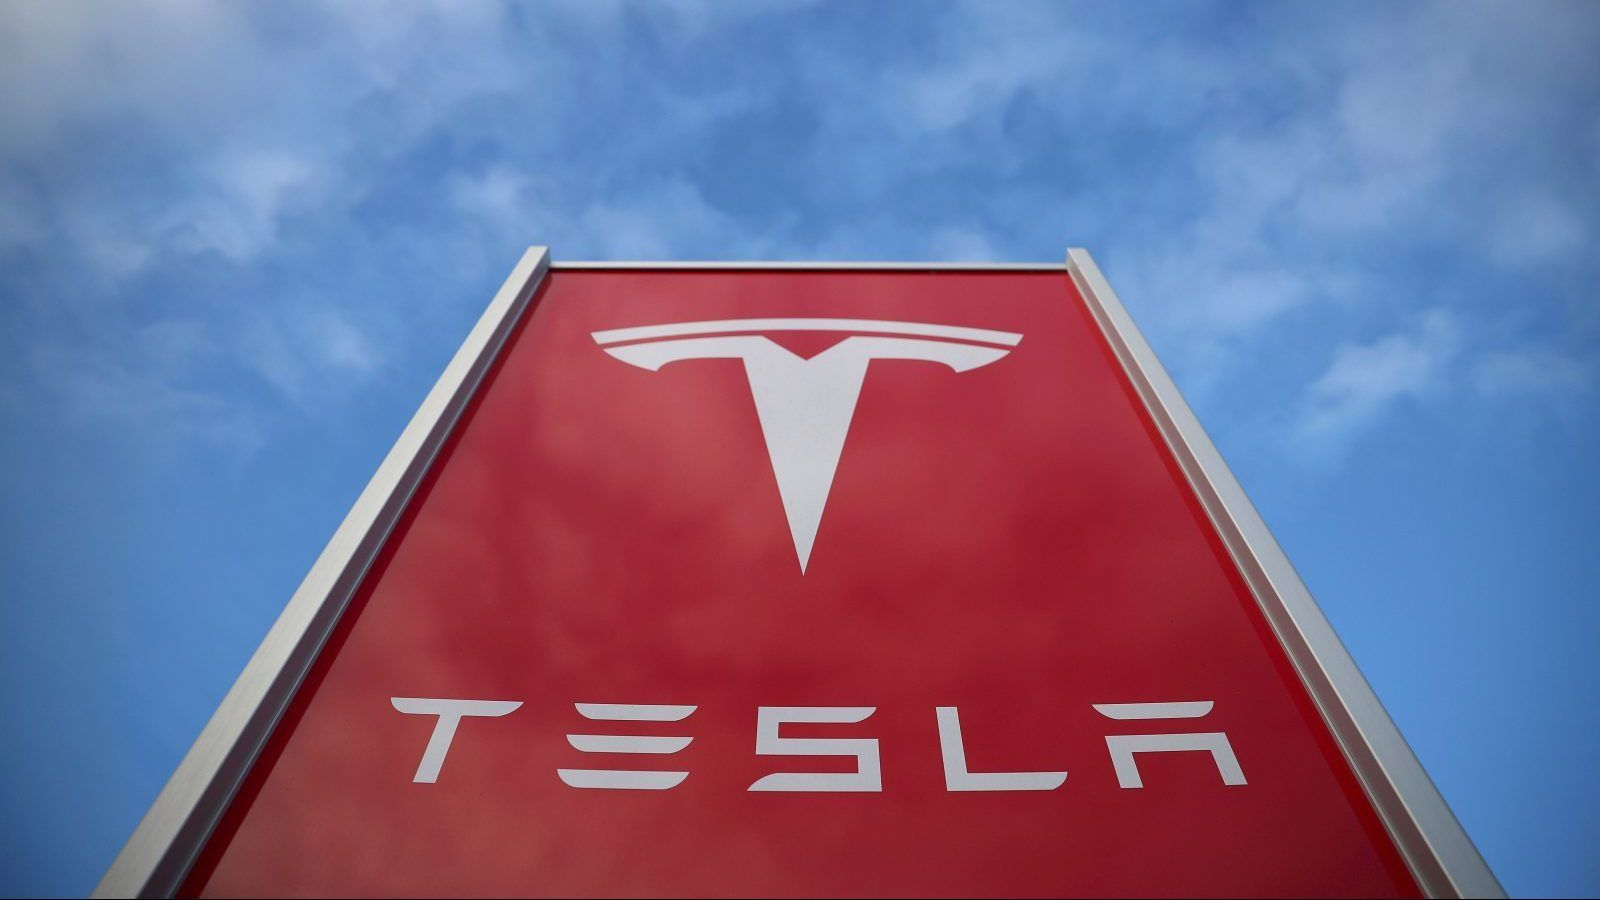 Tesla lays off thousands of workers in corporate restructuring